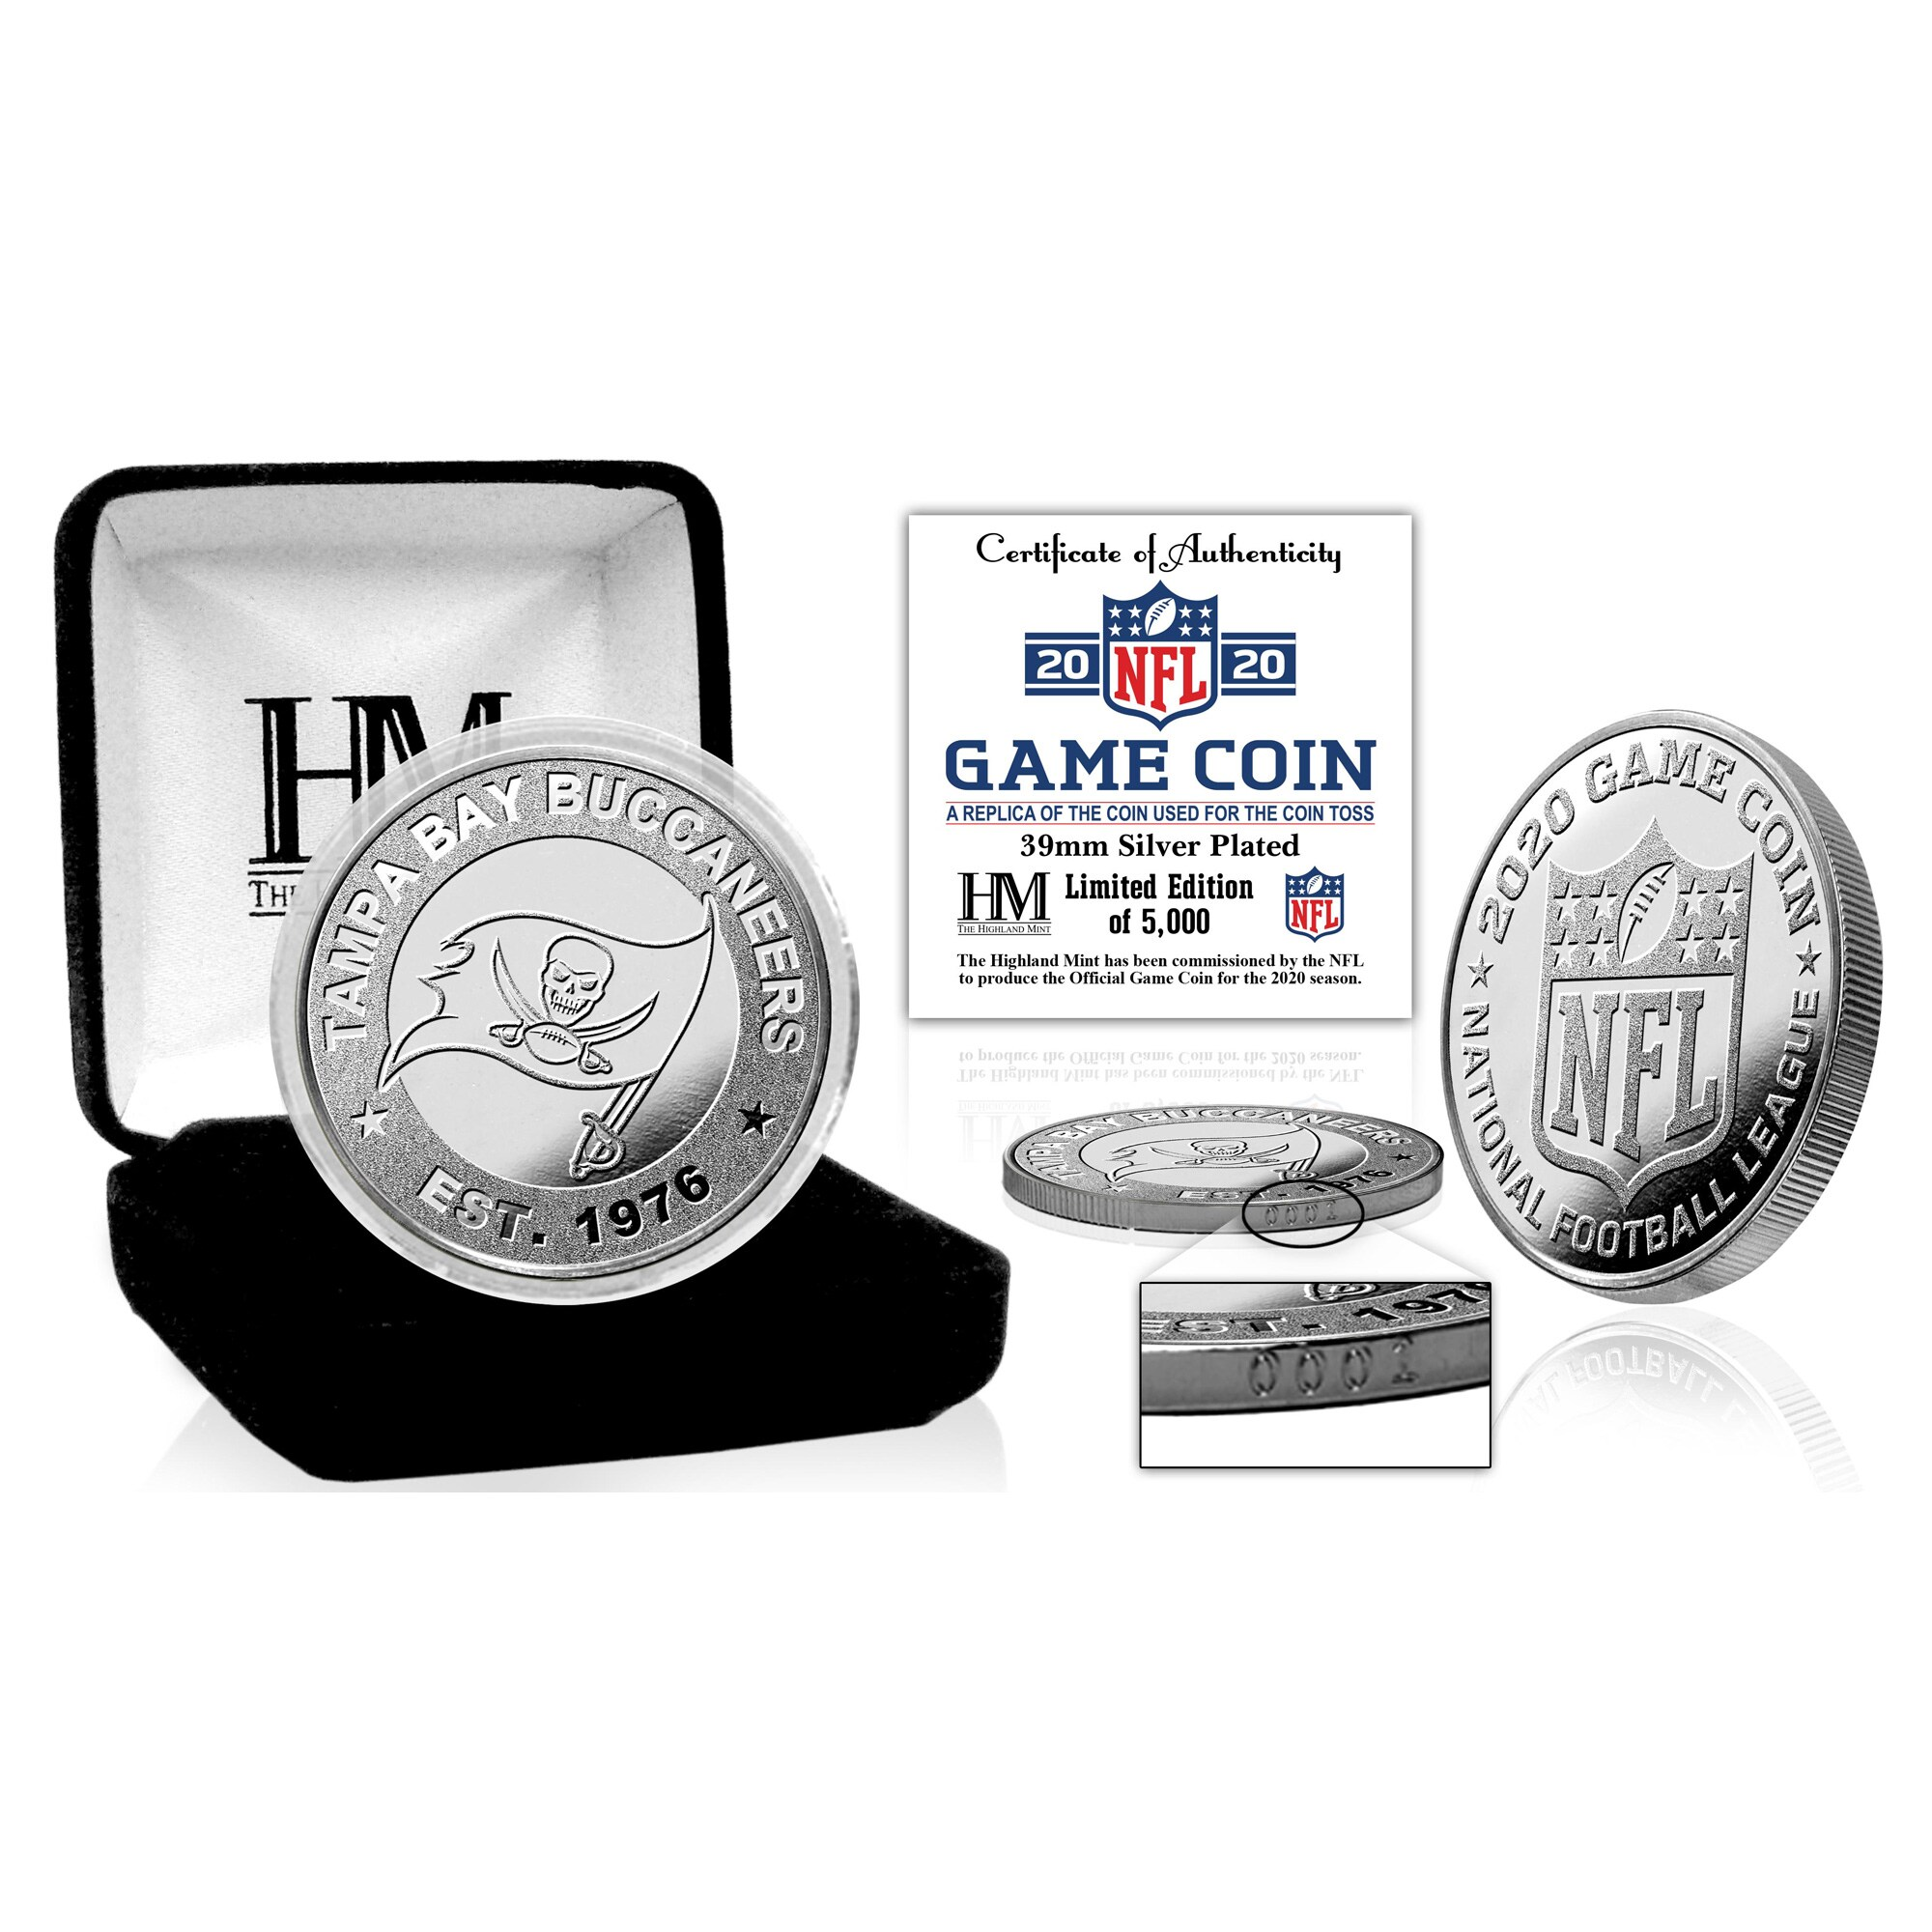 Tampa Bay Buccaneers Highland Mint Silver Mint Game Flip Coin